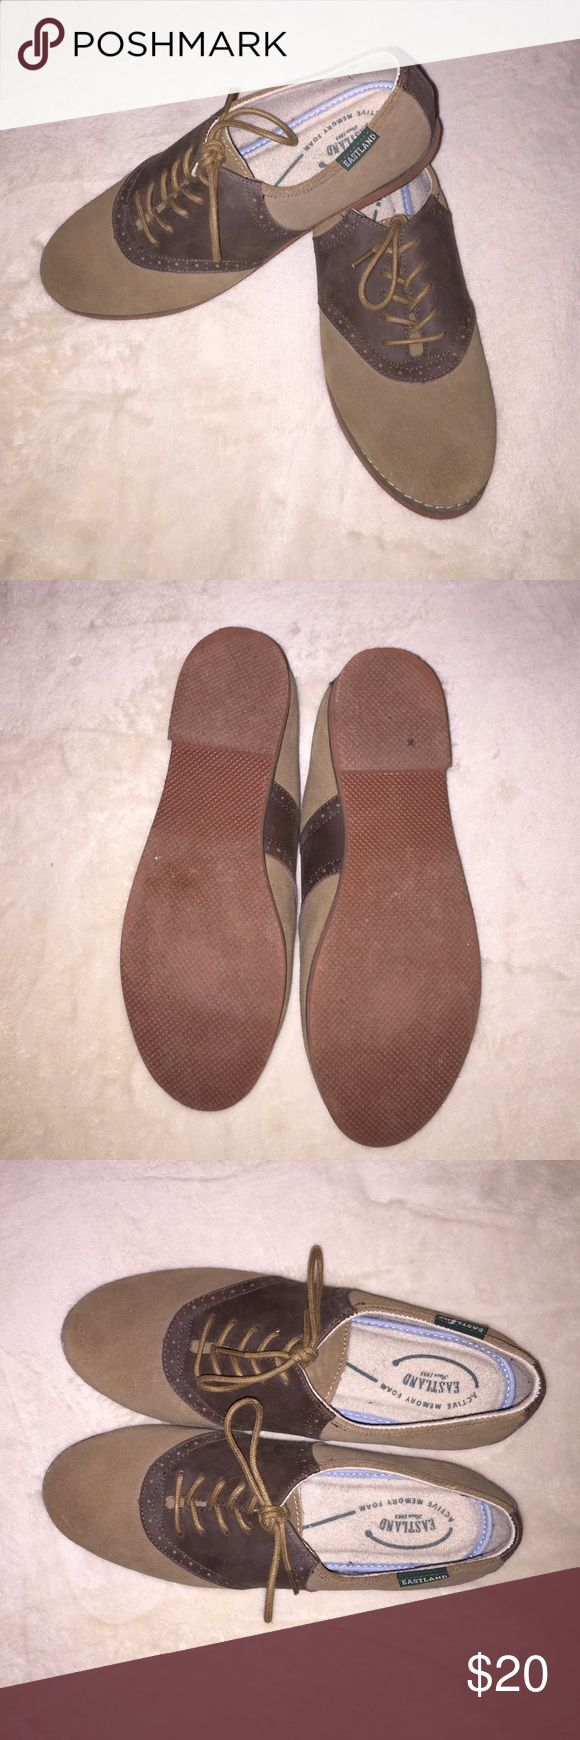 Eastland shoes Women's Gently used Eastland shoes that have only been worn 2x. They are in a size 7.5 Eastland Shoes Flats & Loafers